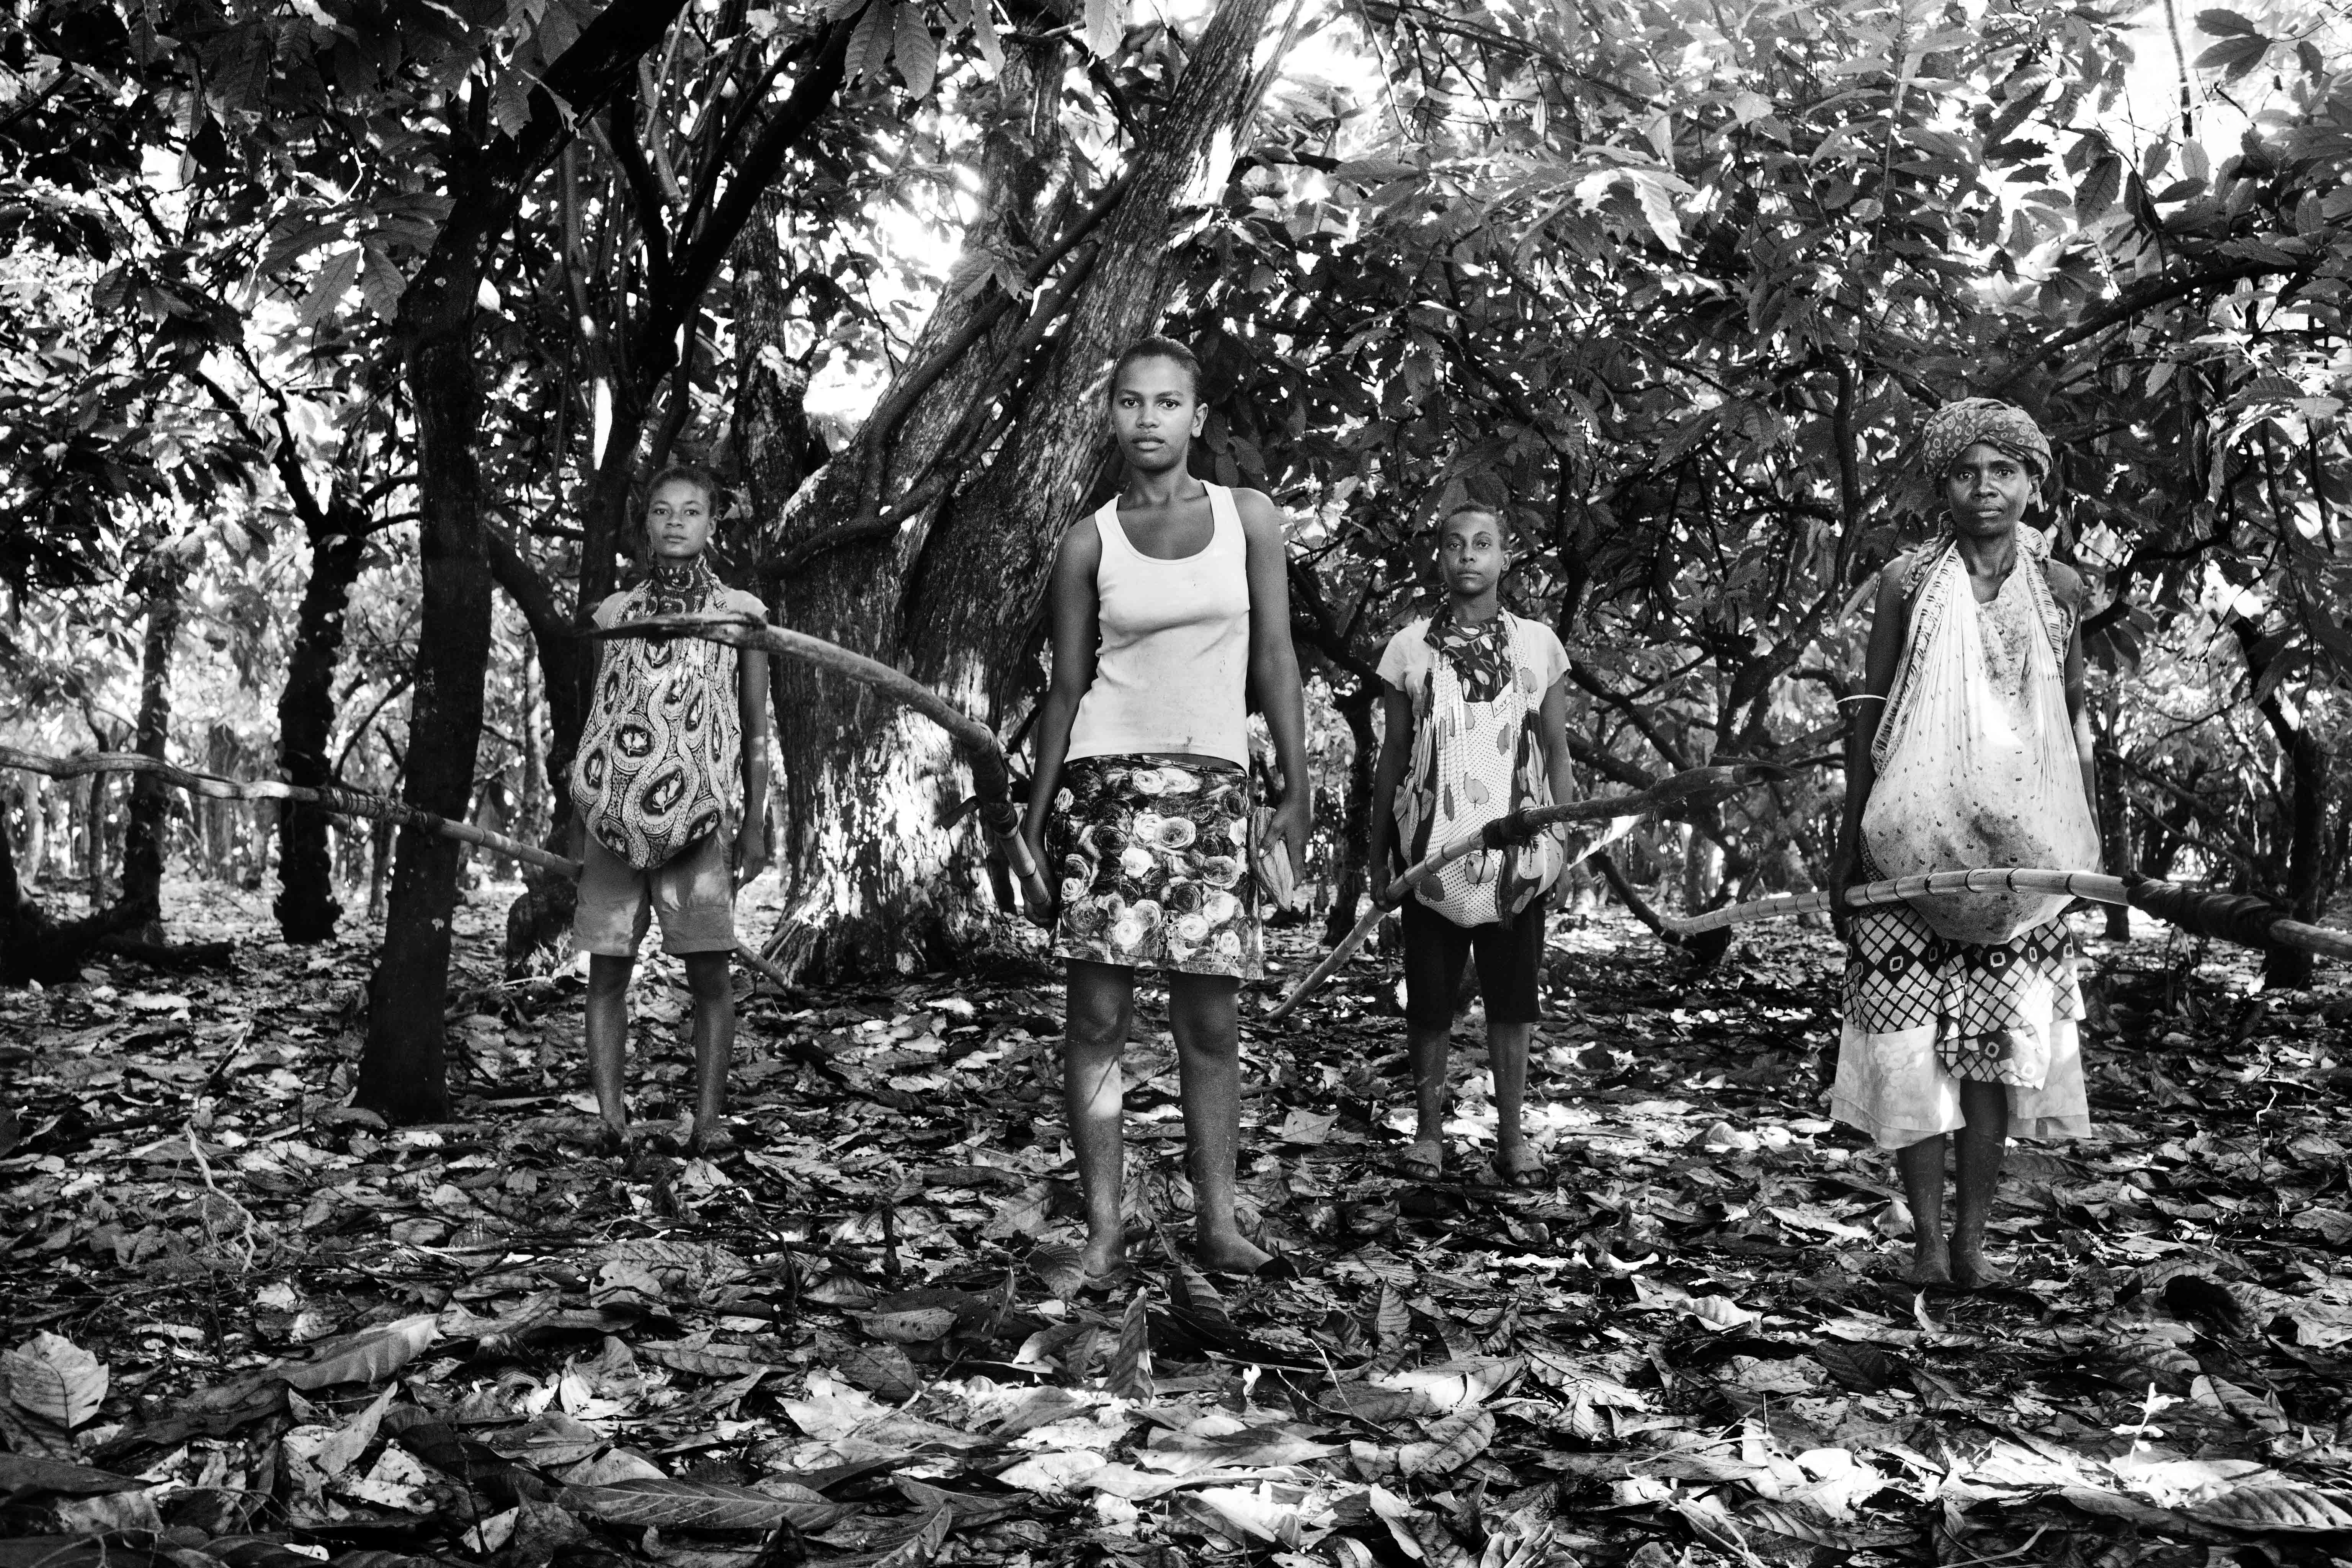 Workers at a large cocoa plantation in Ambanja. March 2013.